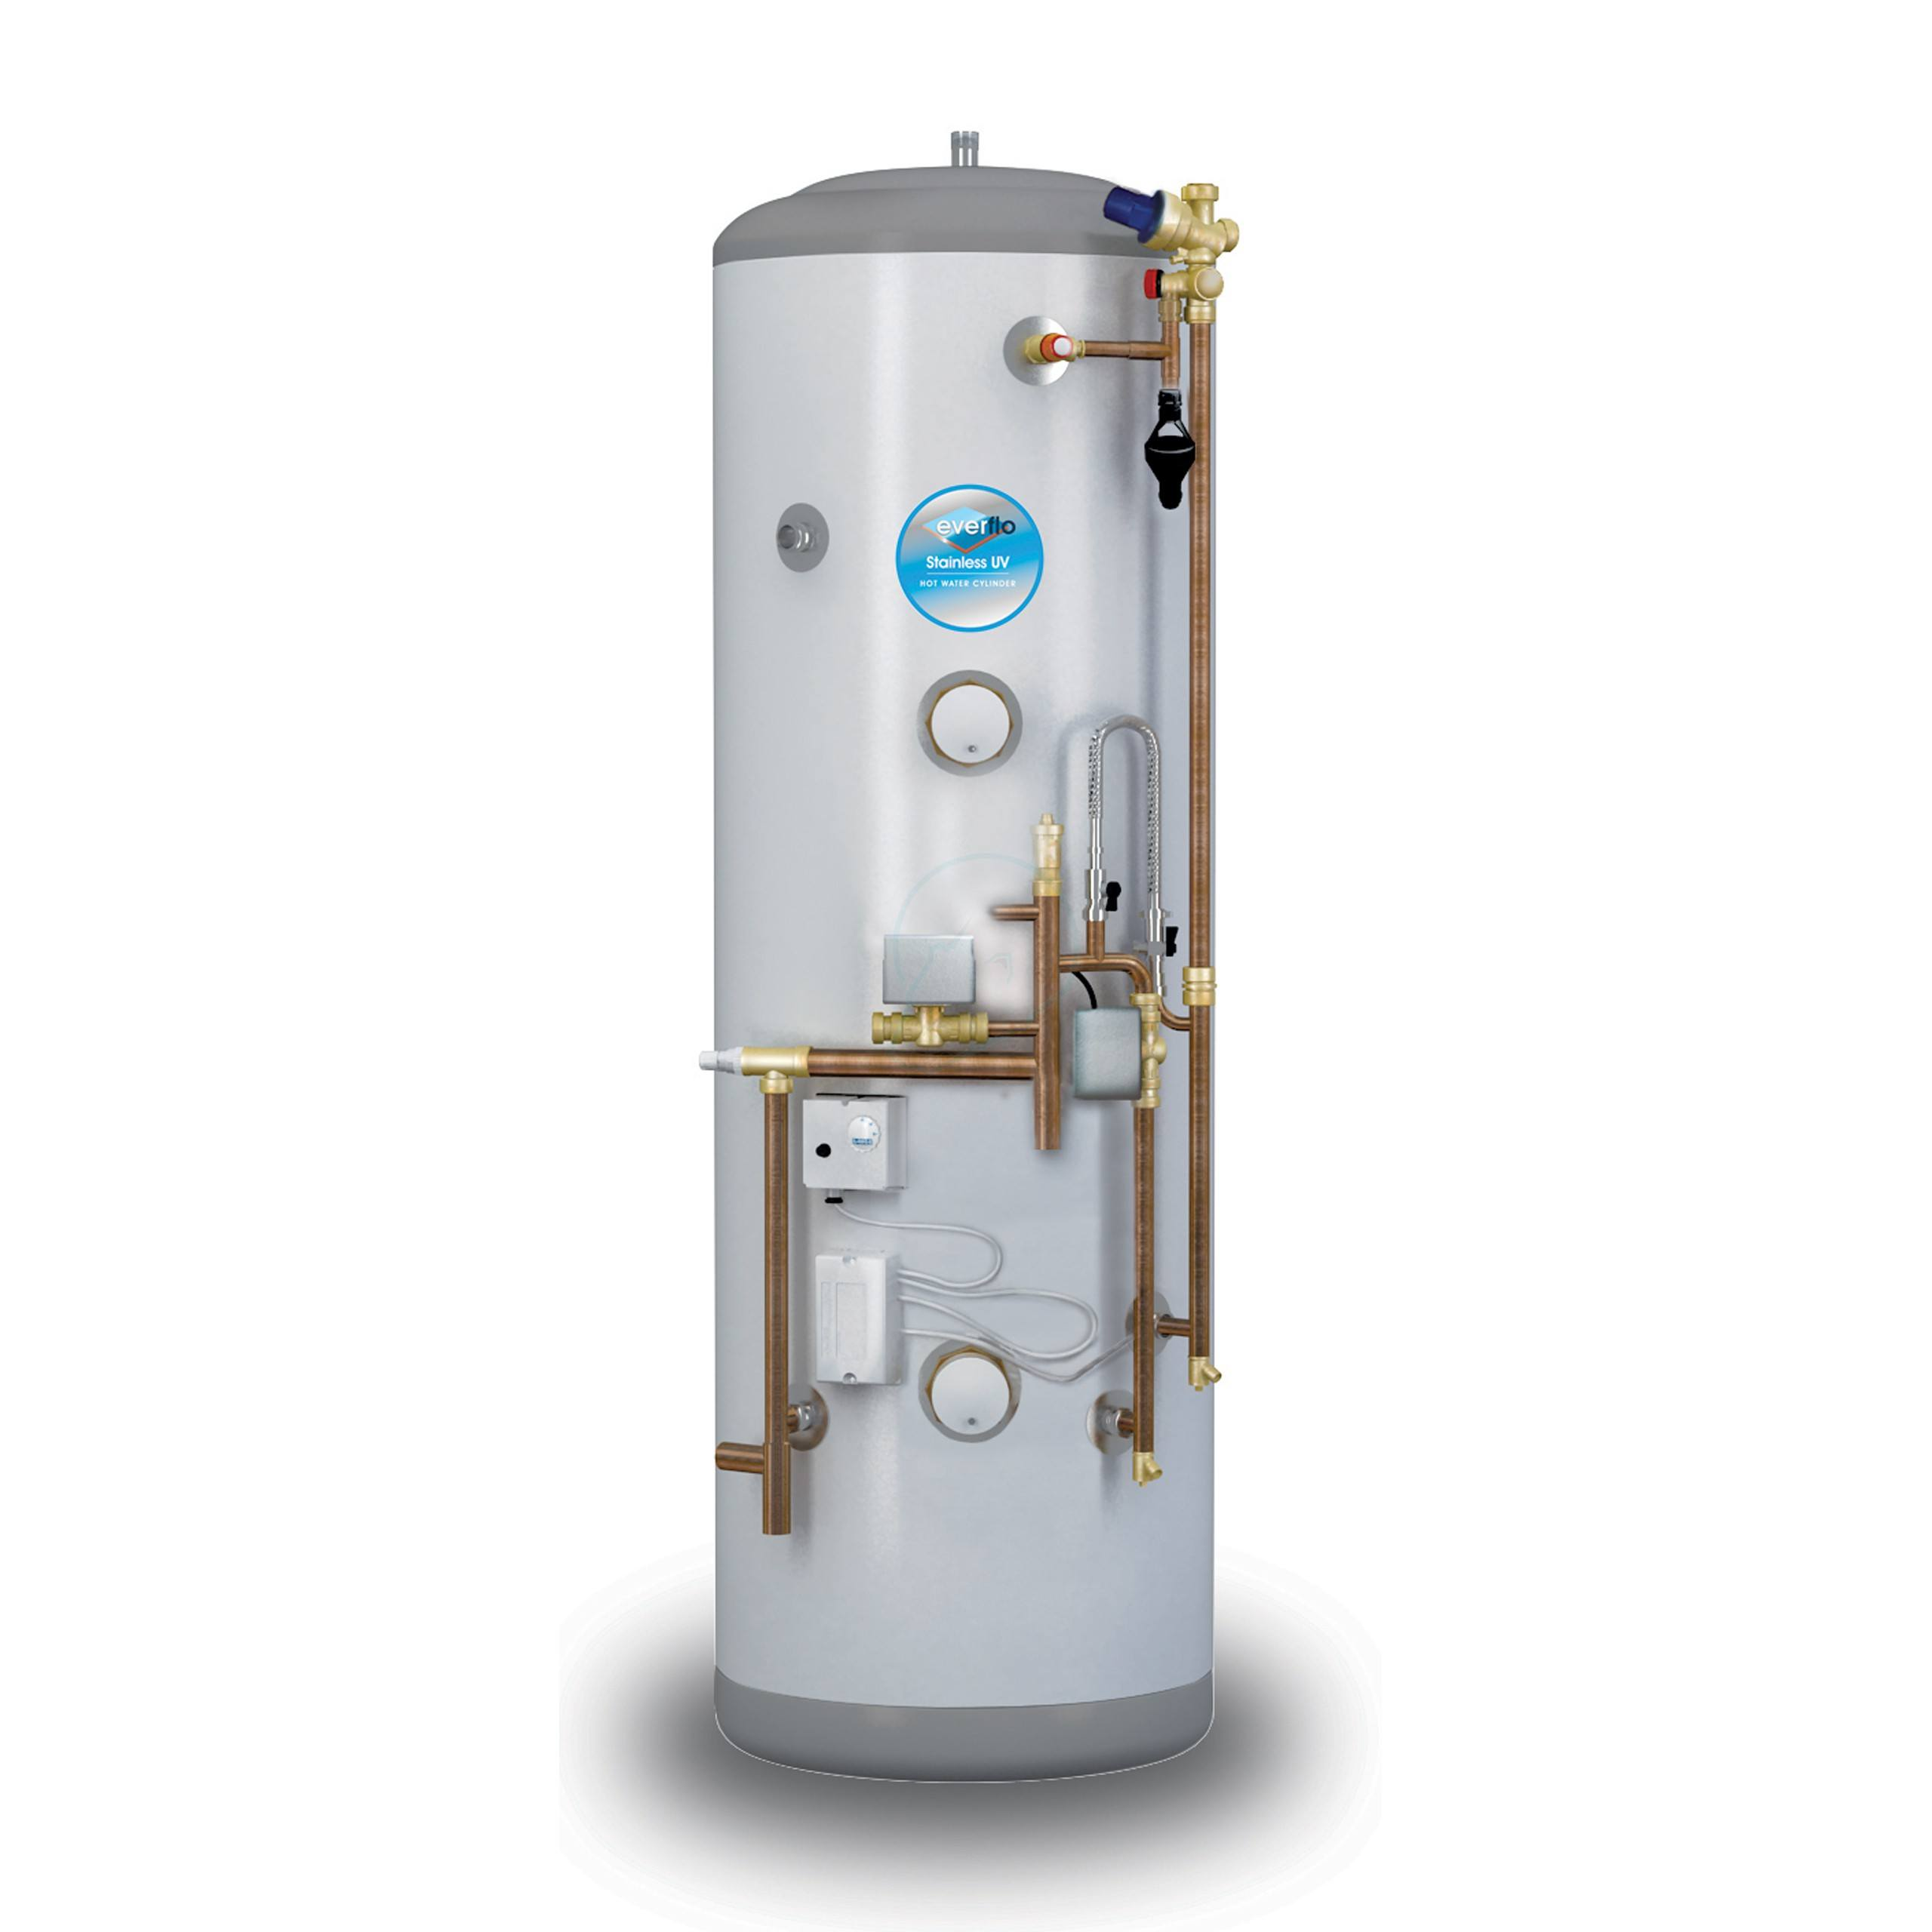 Giona Unvented Hot Water Cylinders